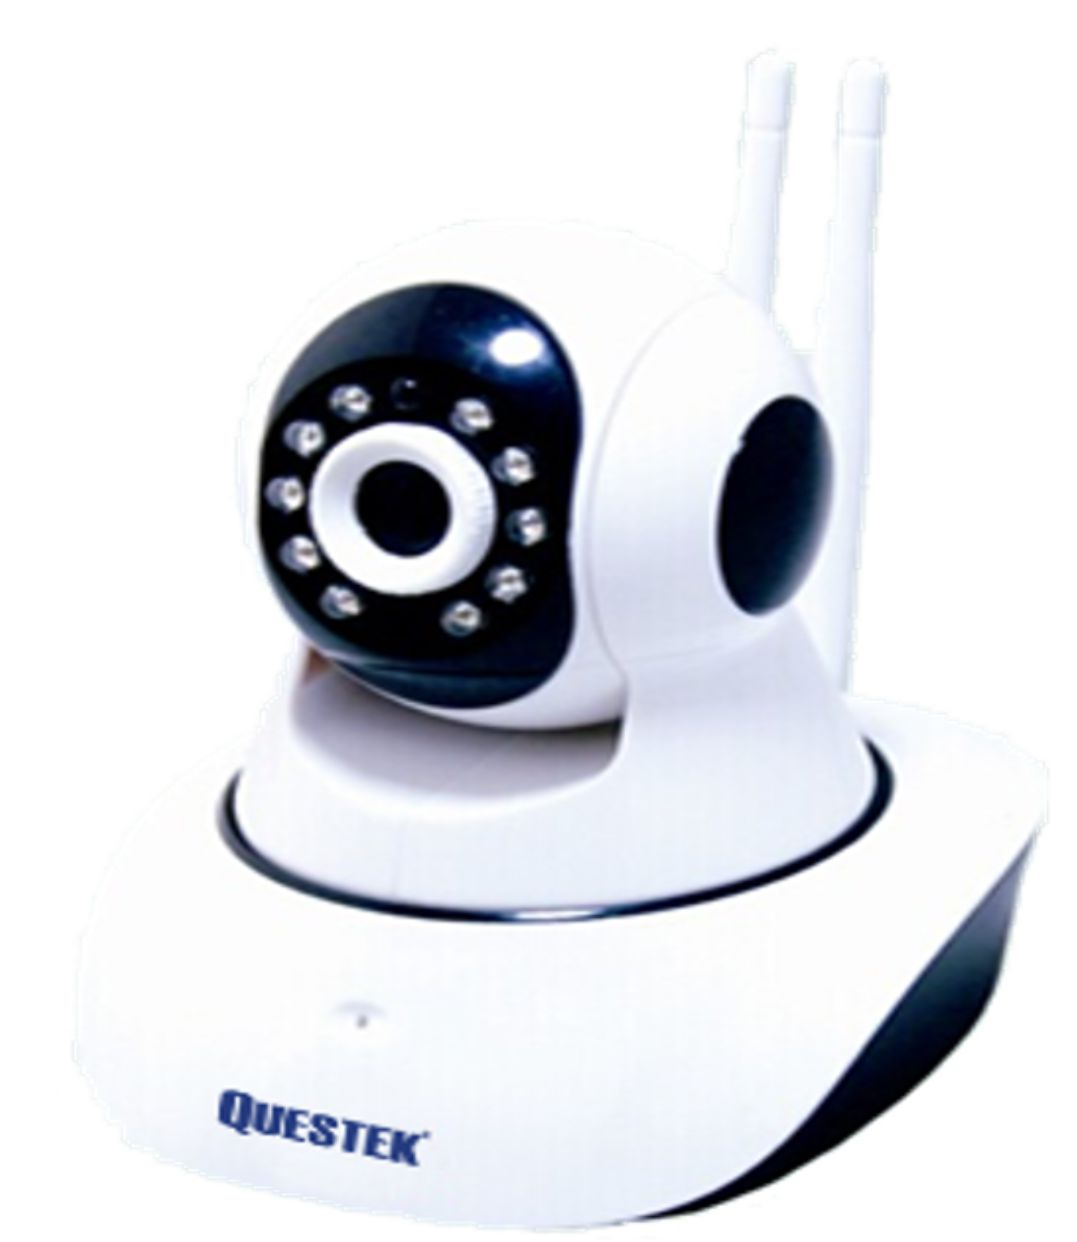 Camera Questek IP QUESTEK Eco - 921IP